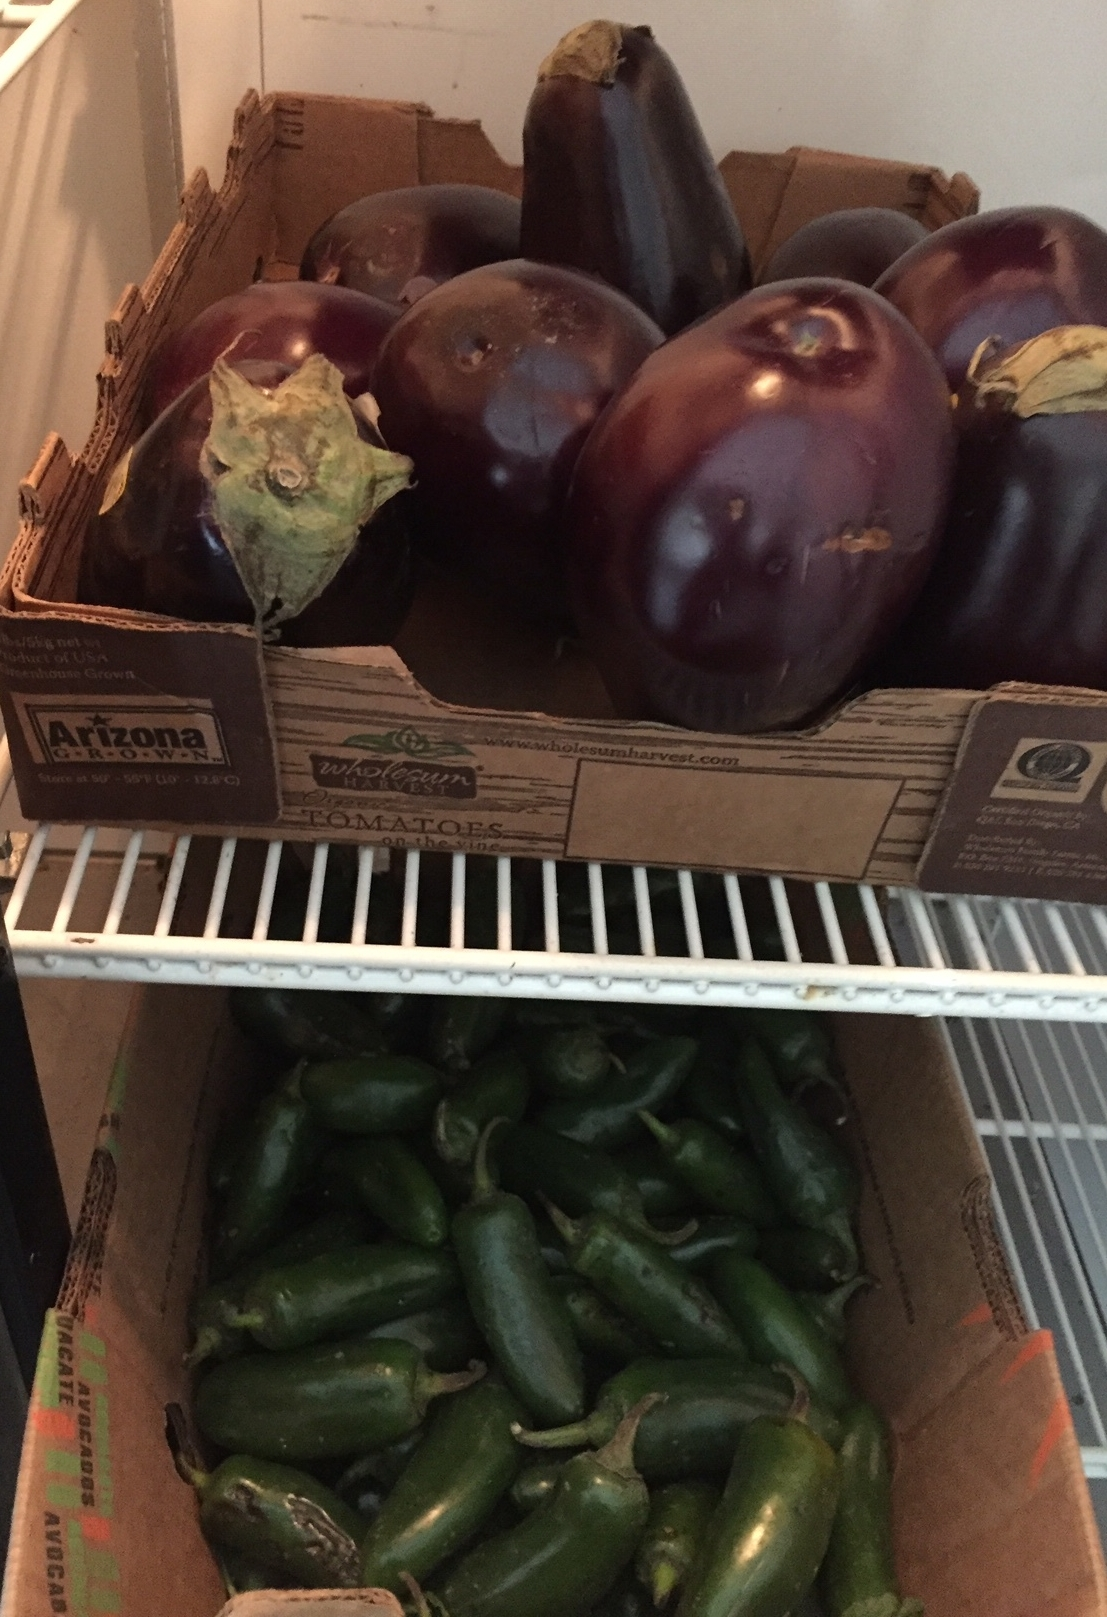 Fresh produce is donated to SFA by General Produce.